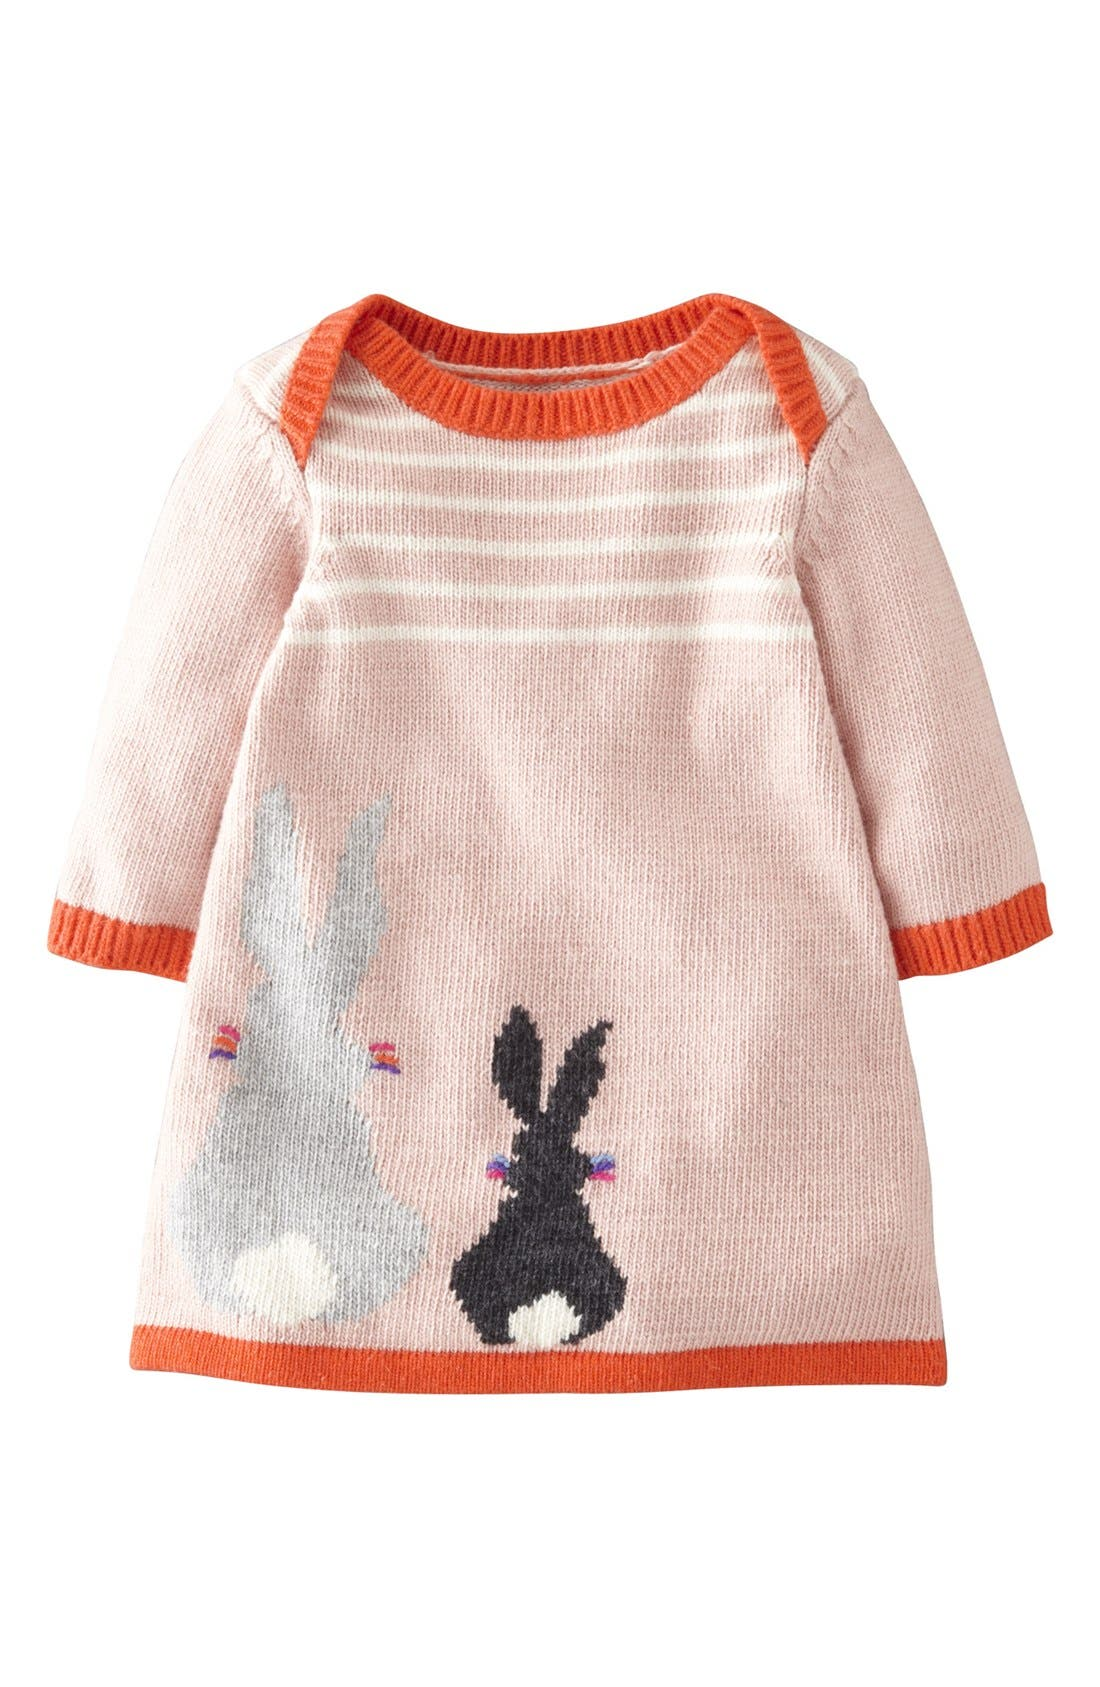 Alternate Image 1 Selected - Mini Boden 'My Baby' Intarsia Sweater Dress (Baby Girls)